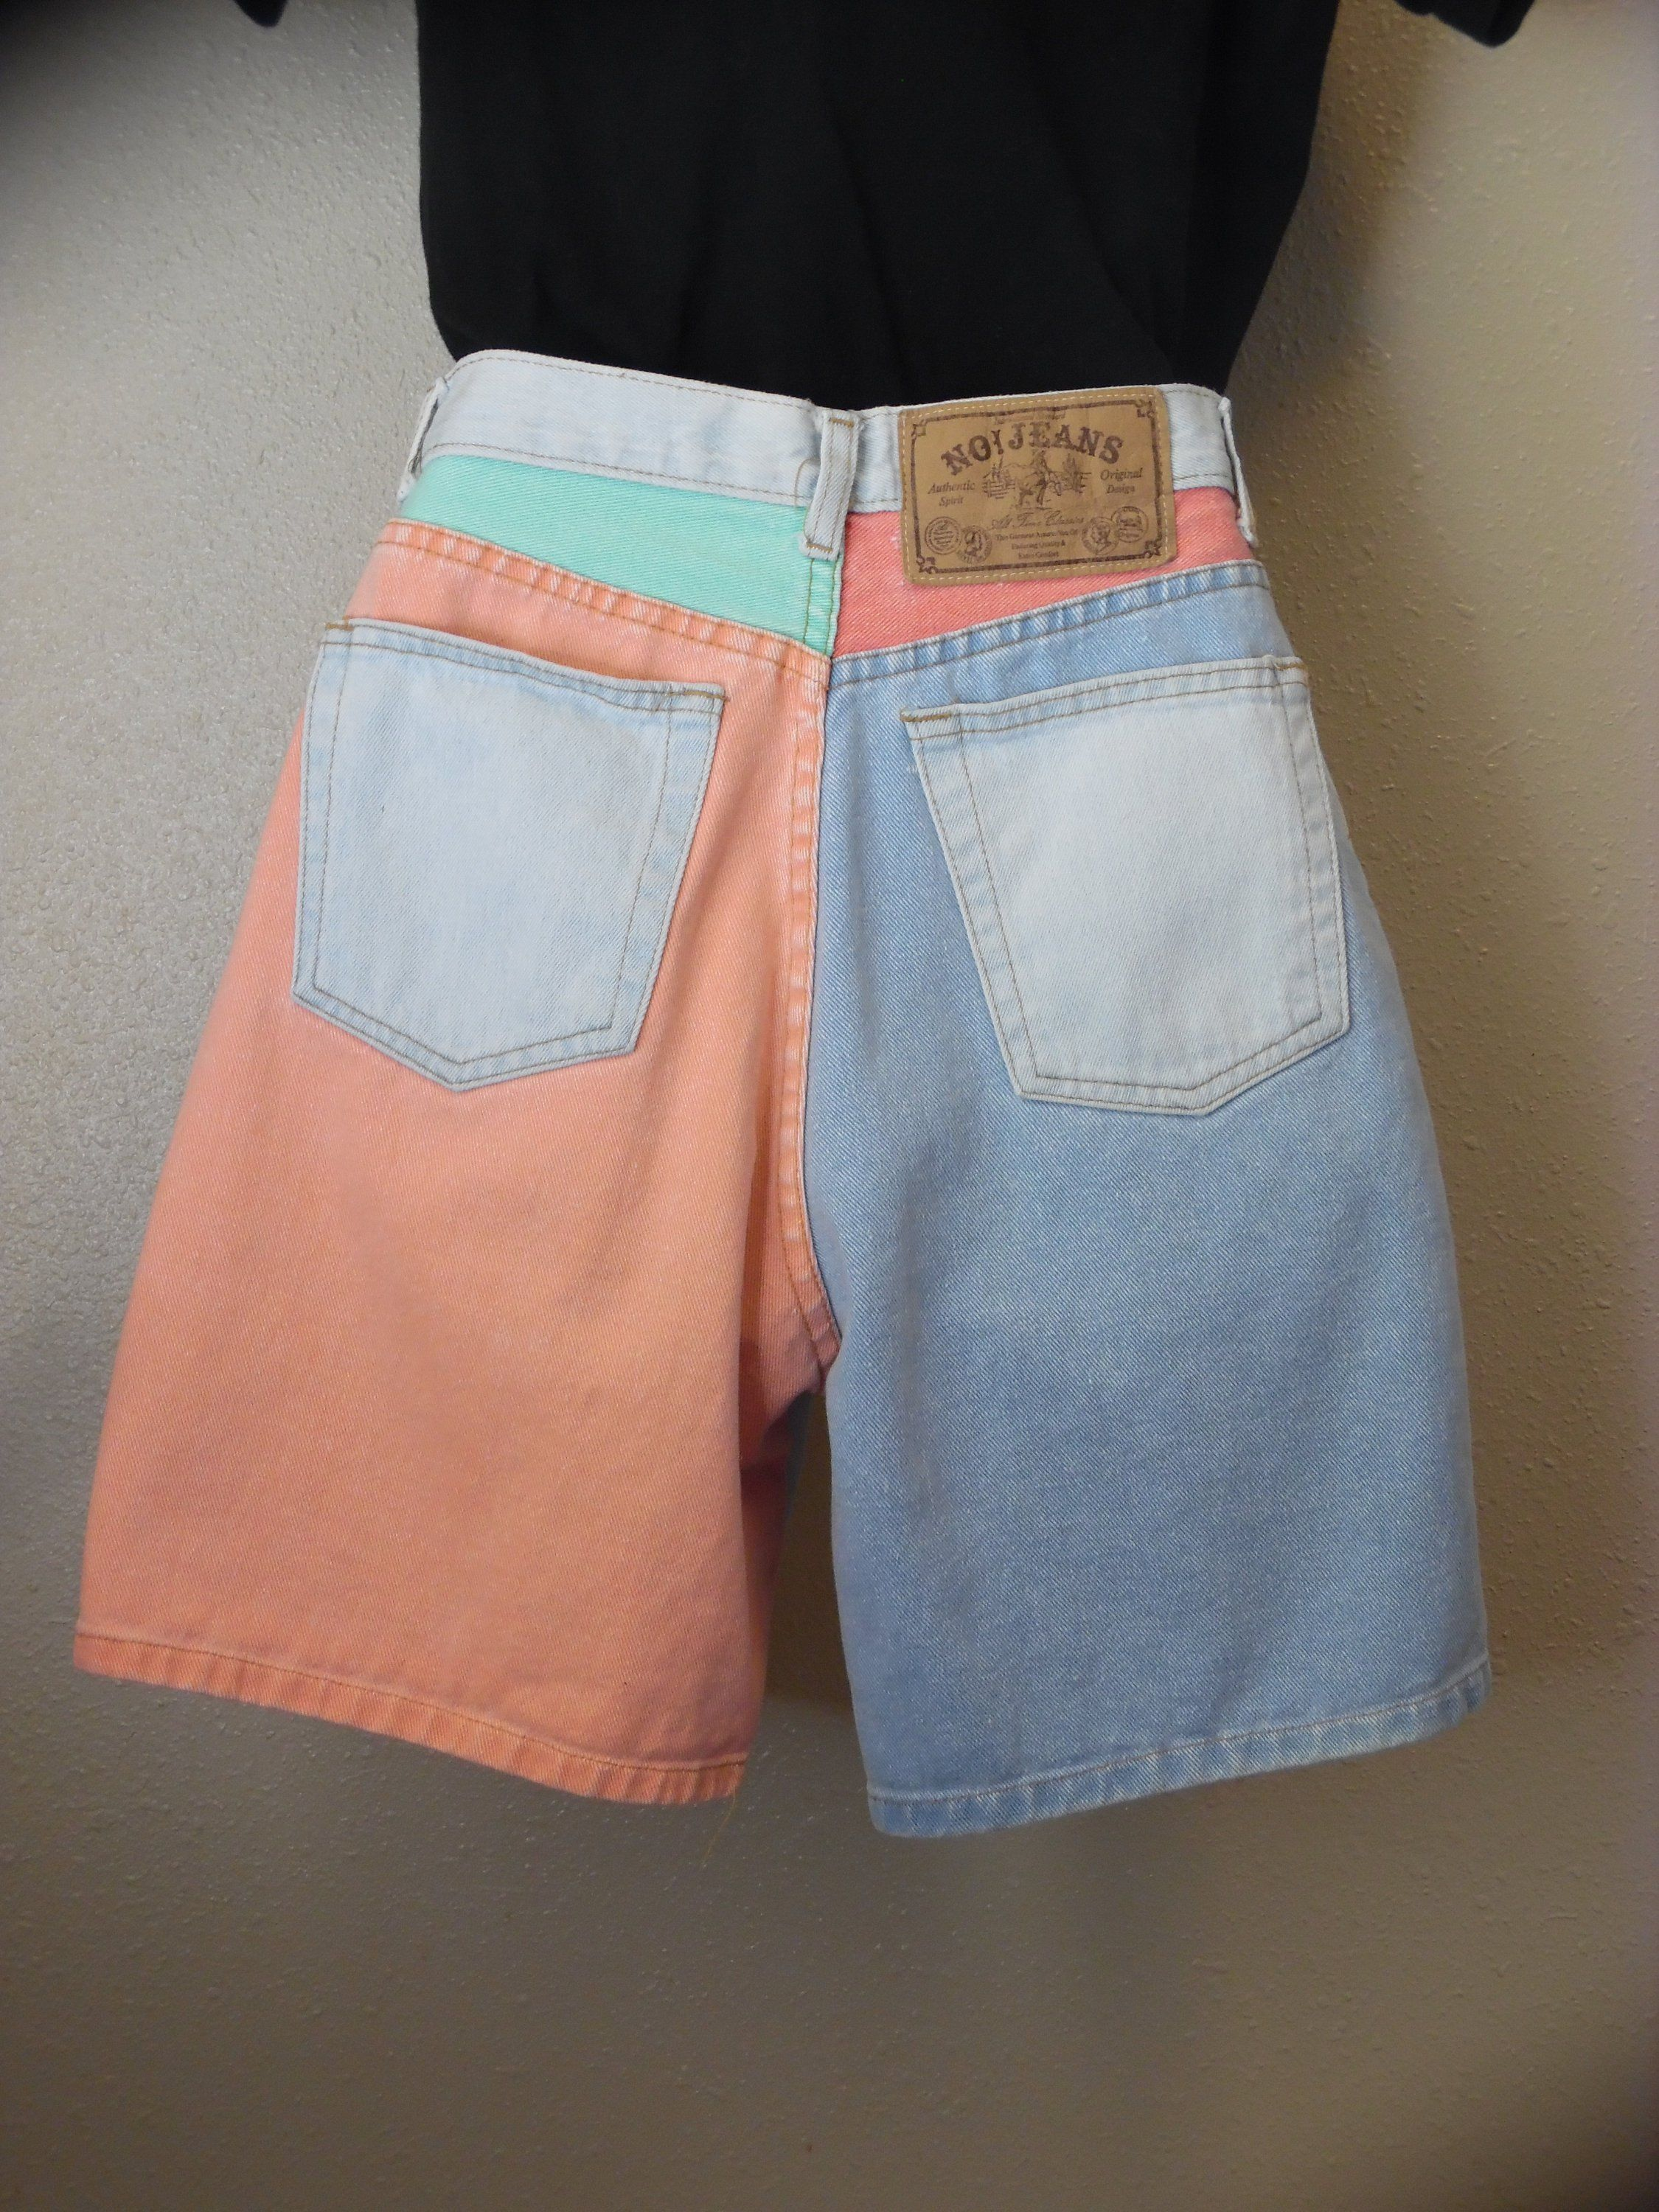 175bb8068 80s 90s Vintage Colorblock Shorts 1980s High Waist Mom Jeans 1990s Funky  Hip Hop Denim Size Small Medium by No! Jeans